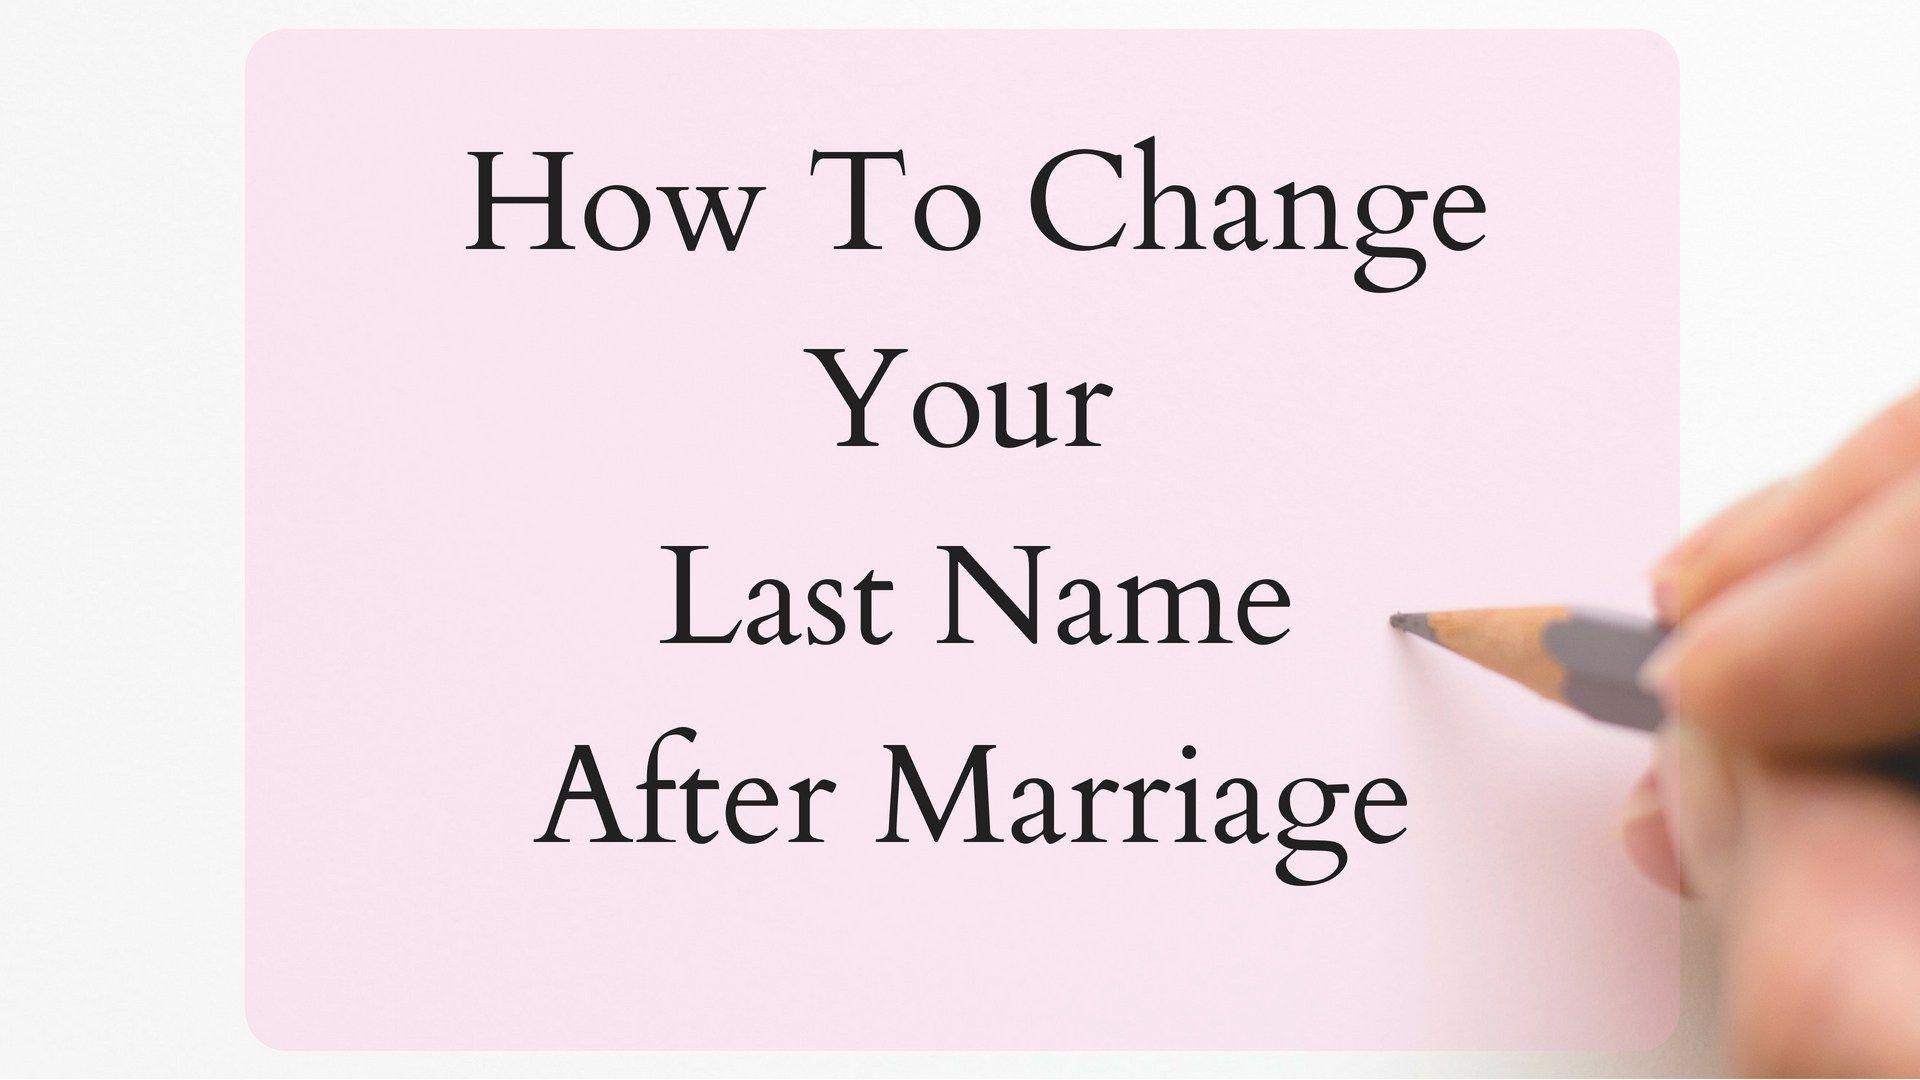 how to change your last name in utah after marriage